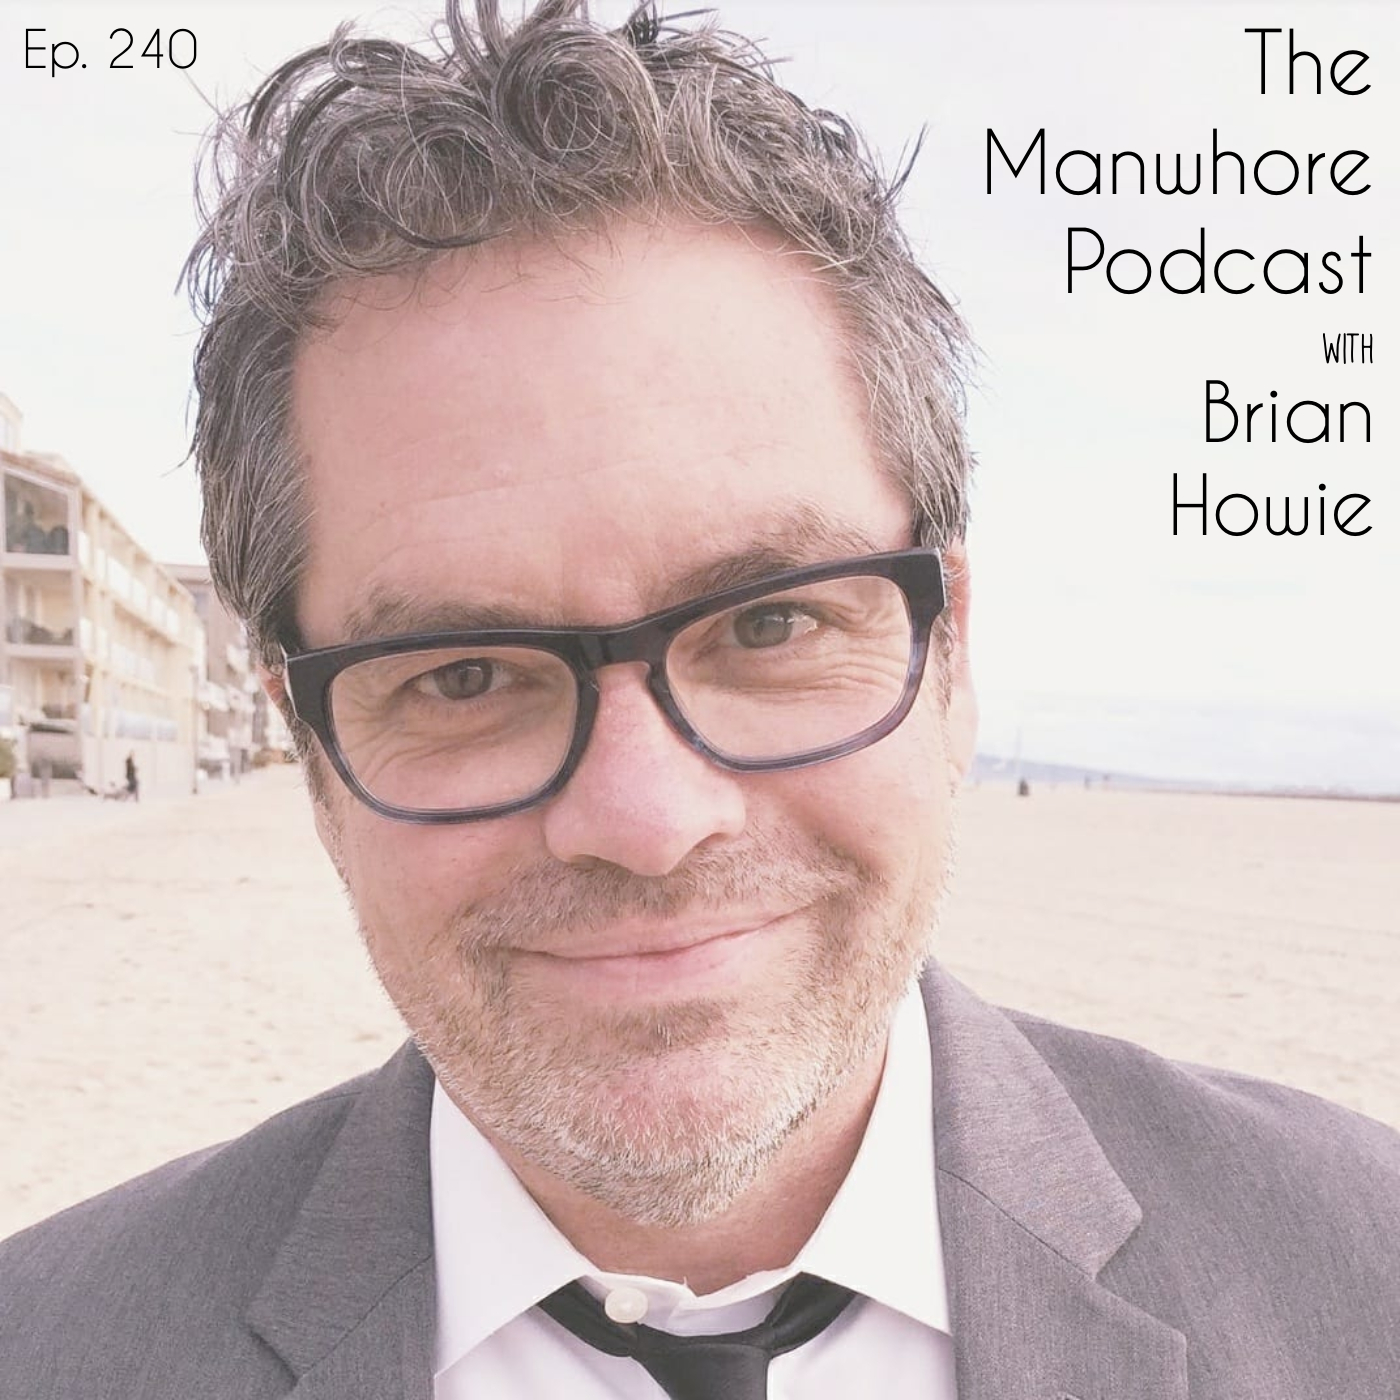 The Manwhore Podcast: A Sex-Positive Quest - Ep. 240: Are Dick Pics Women's Fault? —with Brian Howie